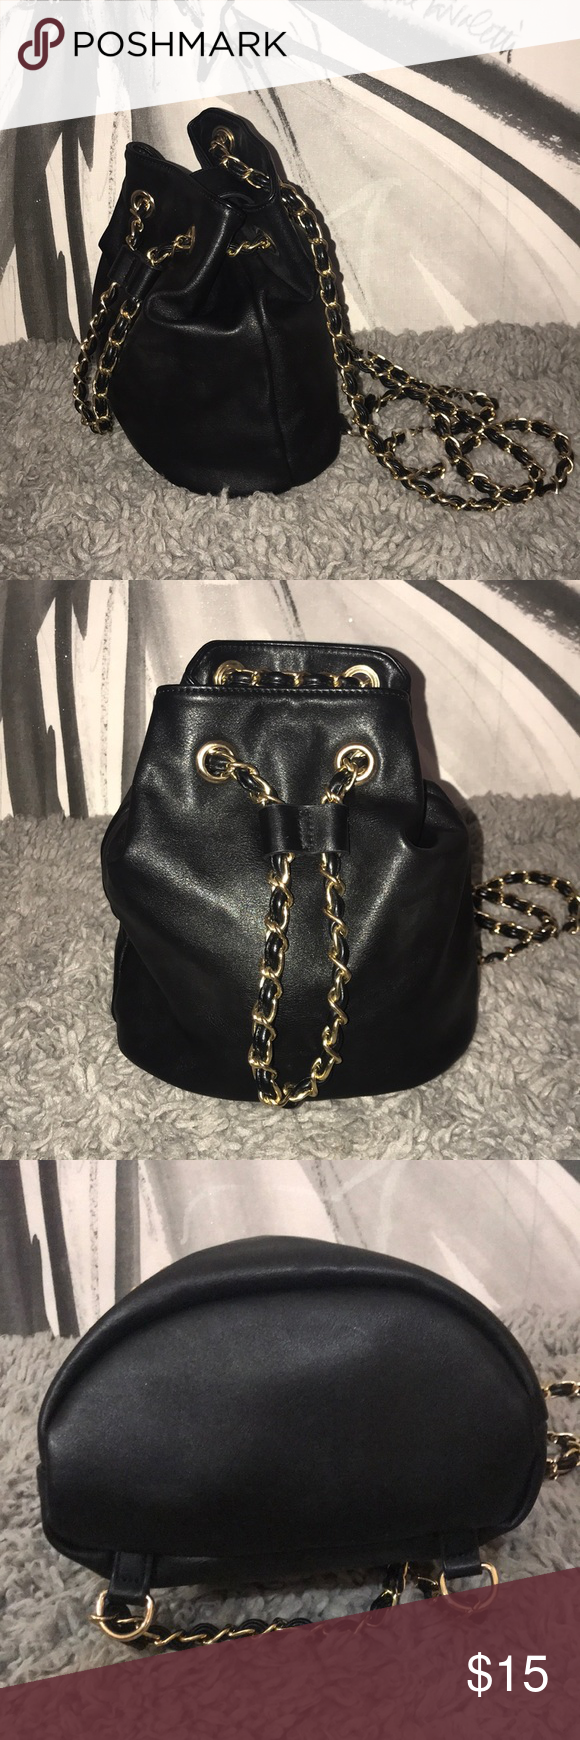 0f8ad745b129a6 In beautiful condition with scuffs, scratches and marks throughout bag and  hardware as seen in pics. FOREVER 21 brand. Forever 21 Bags